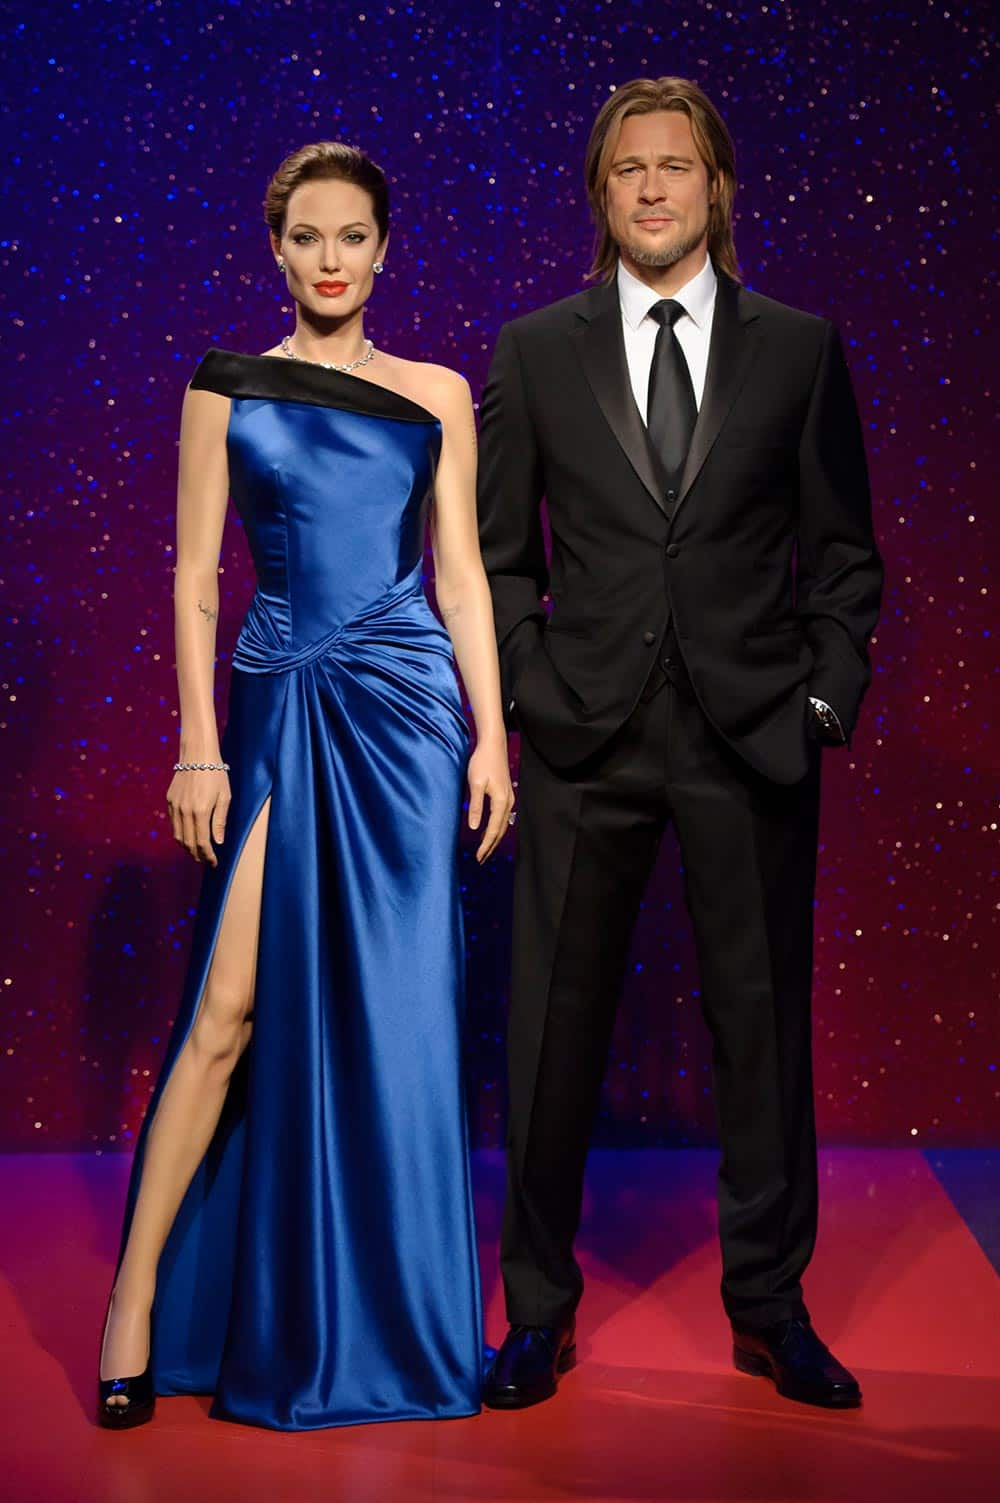 Wax figures of Hollywood actors Angelina Jolie and Brad Pitt are displayed in the party area of the wax museum.